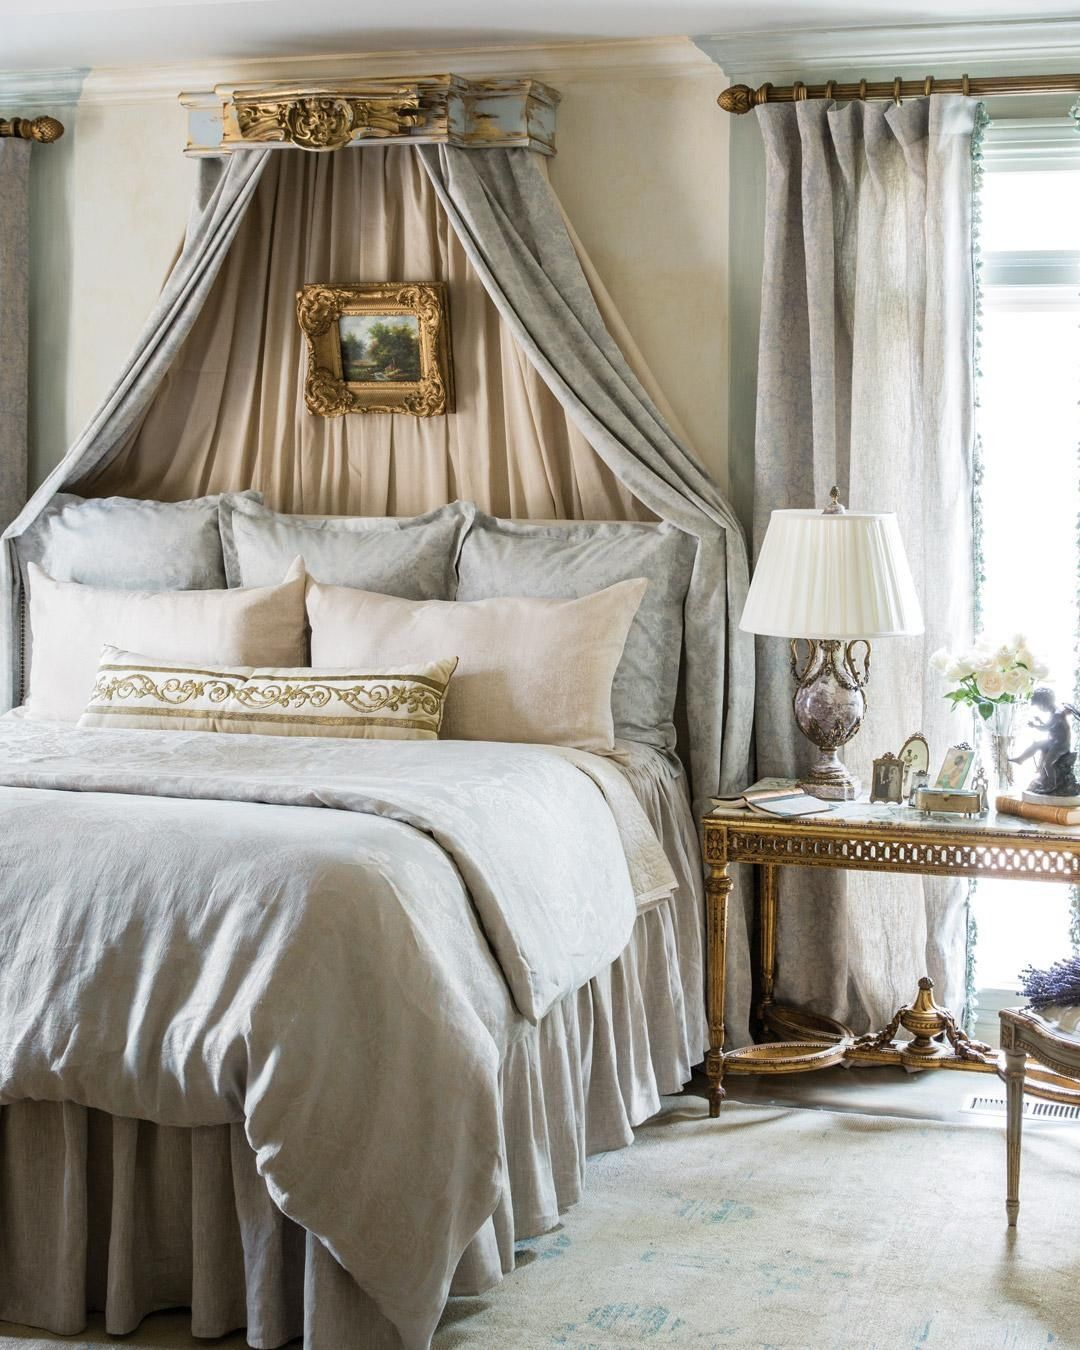 An Antique Ottoman Empire Raised Gold Metallic Embroidery Pillow By Bvizdesign Leans Against The Sumptuous Antique Ottoman Victoria Magazine French Empire Bed